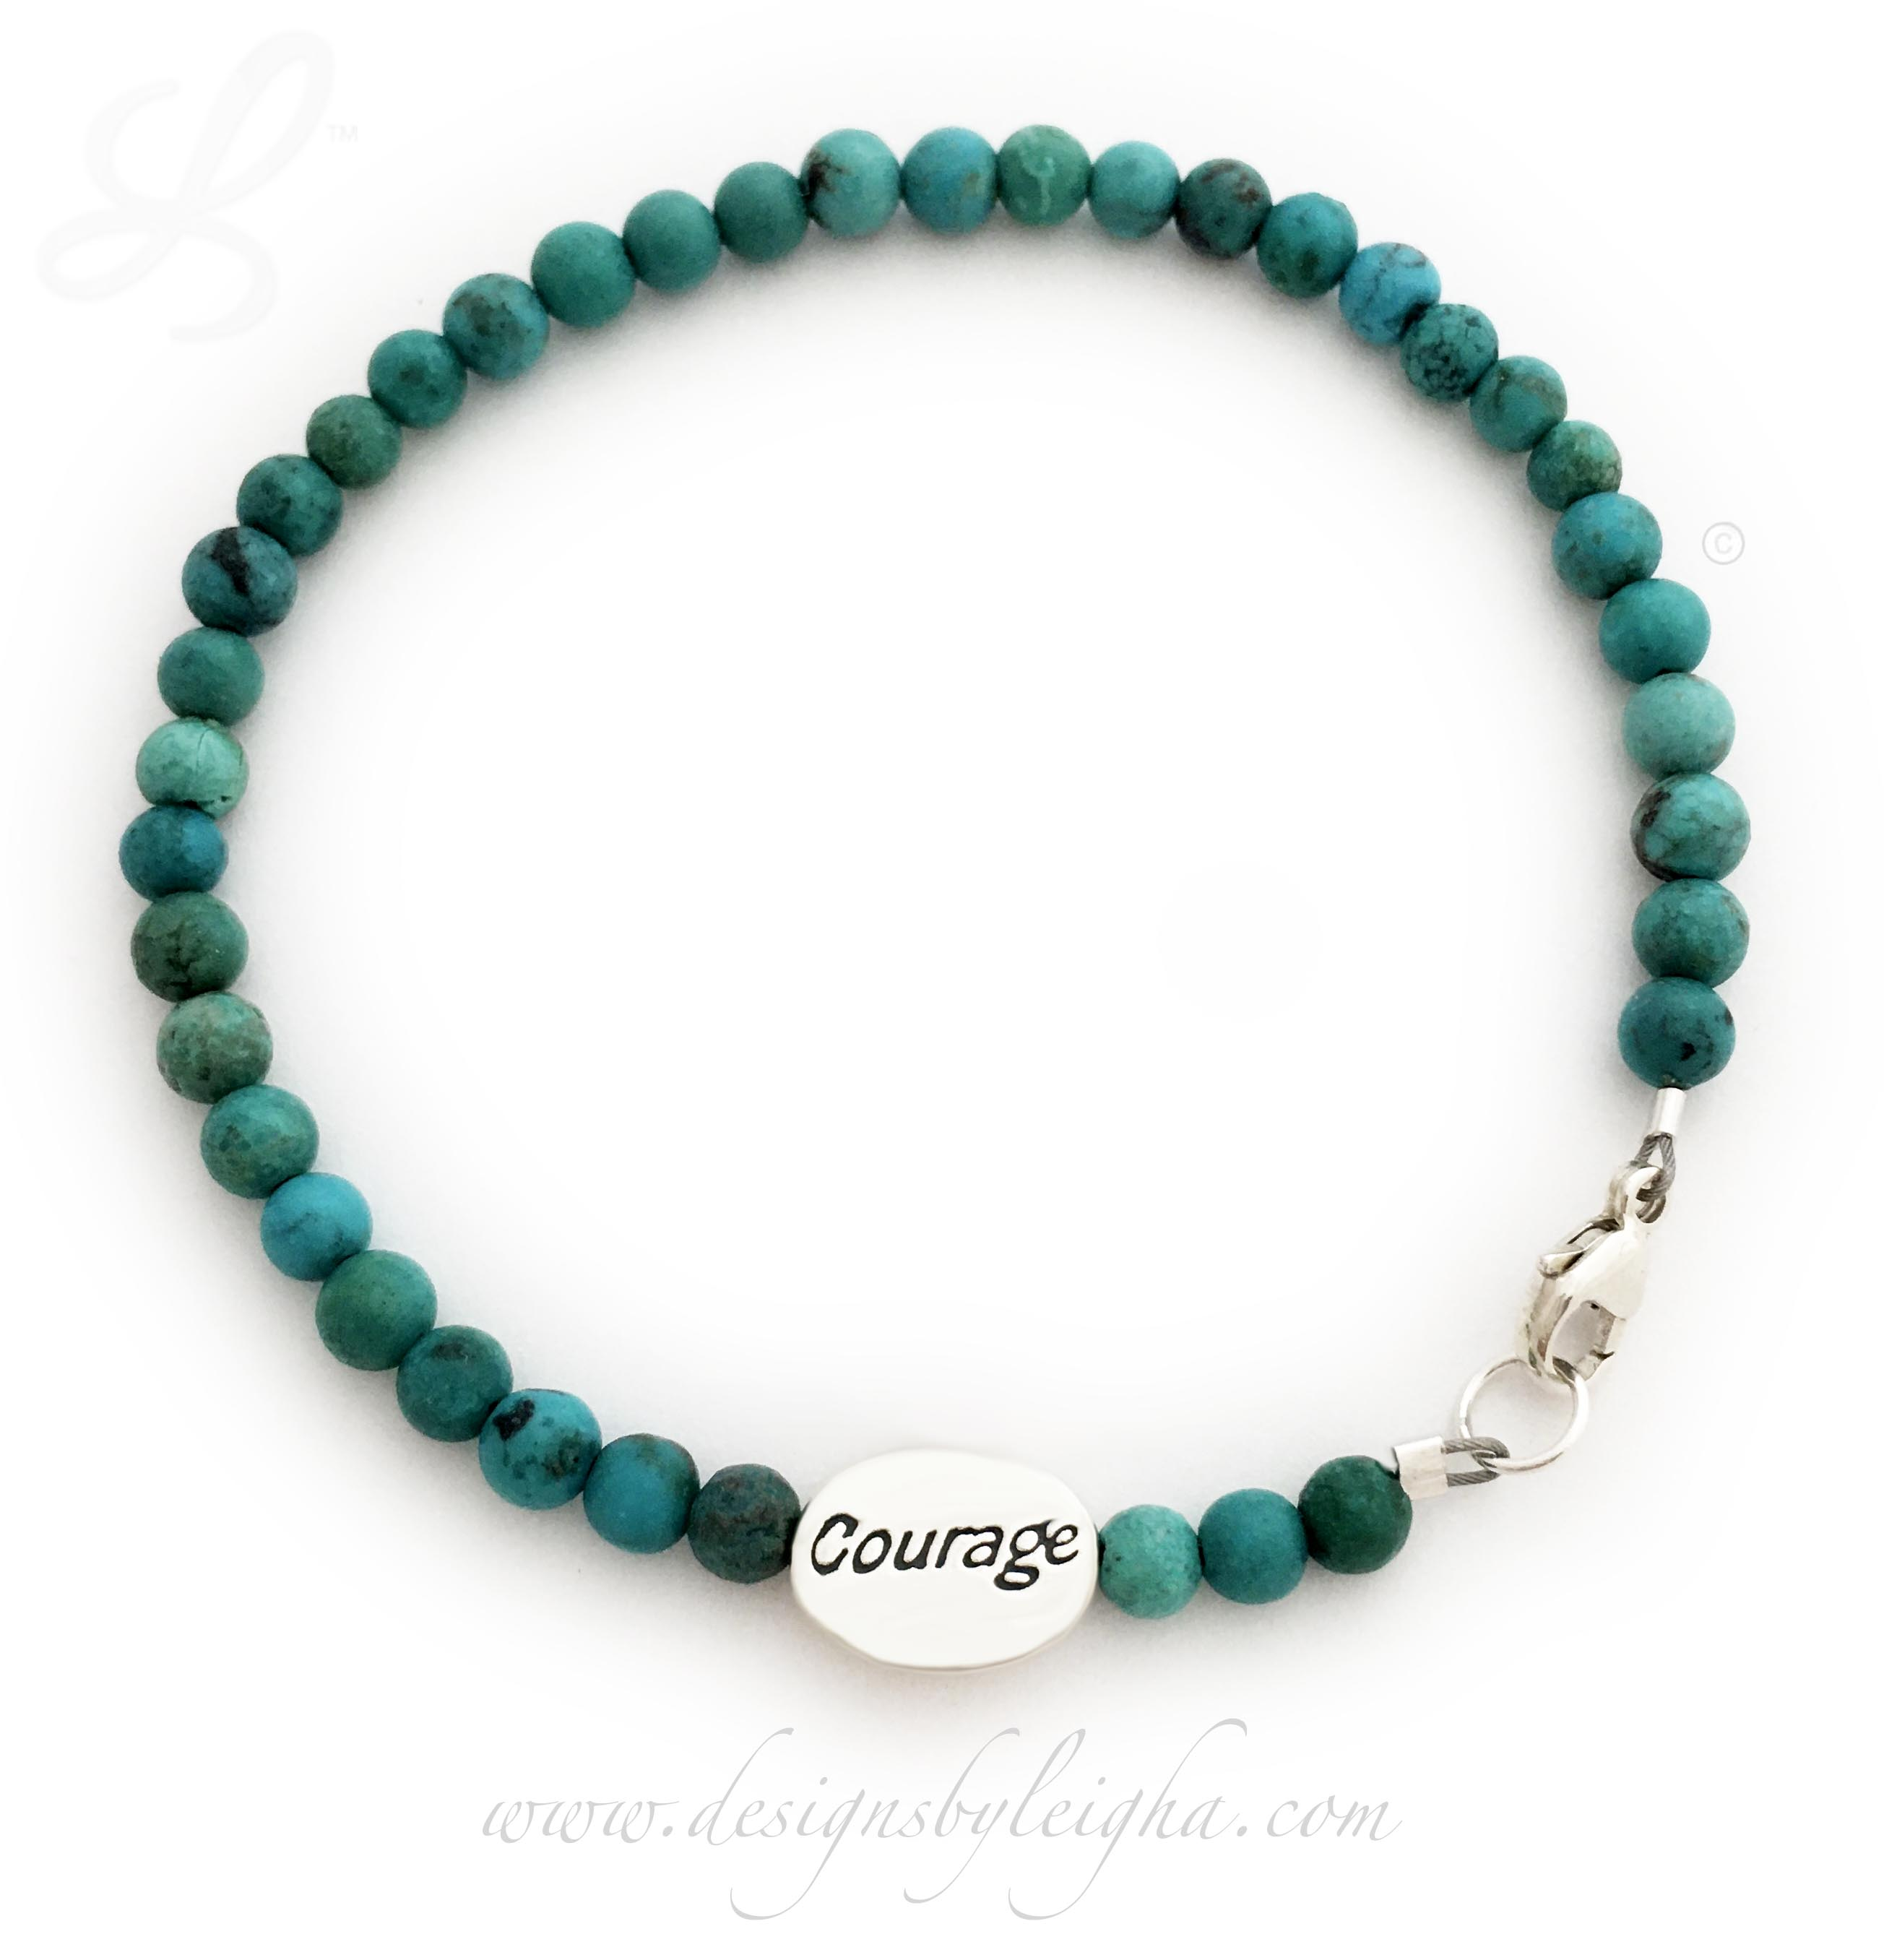 Amethyst Gemstone Courage Bracelet - any gemstone! -CBB-R60